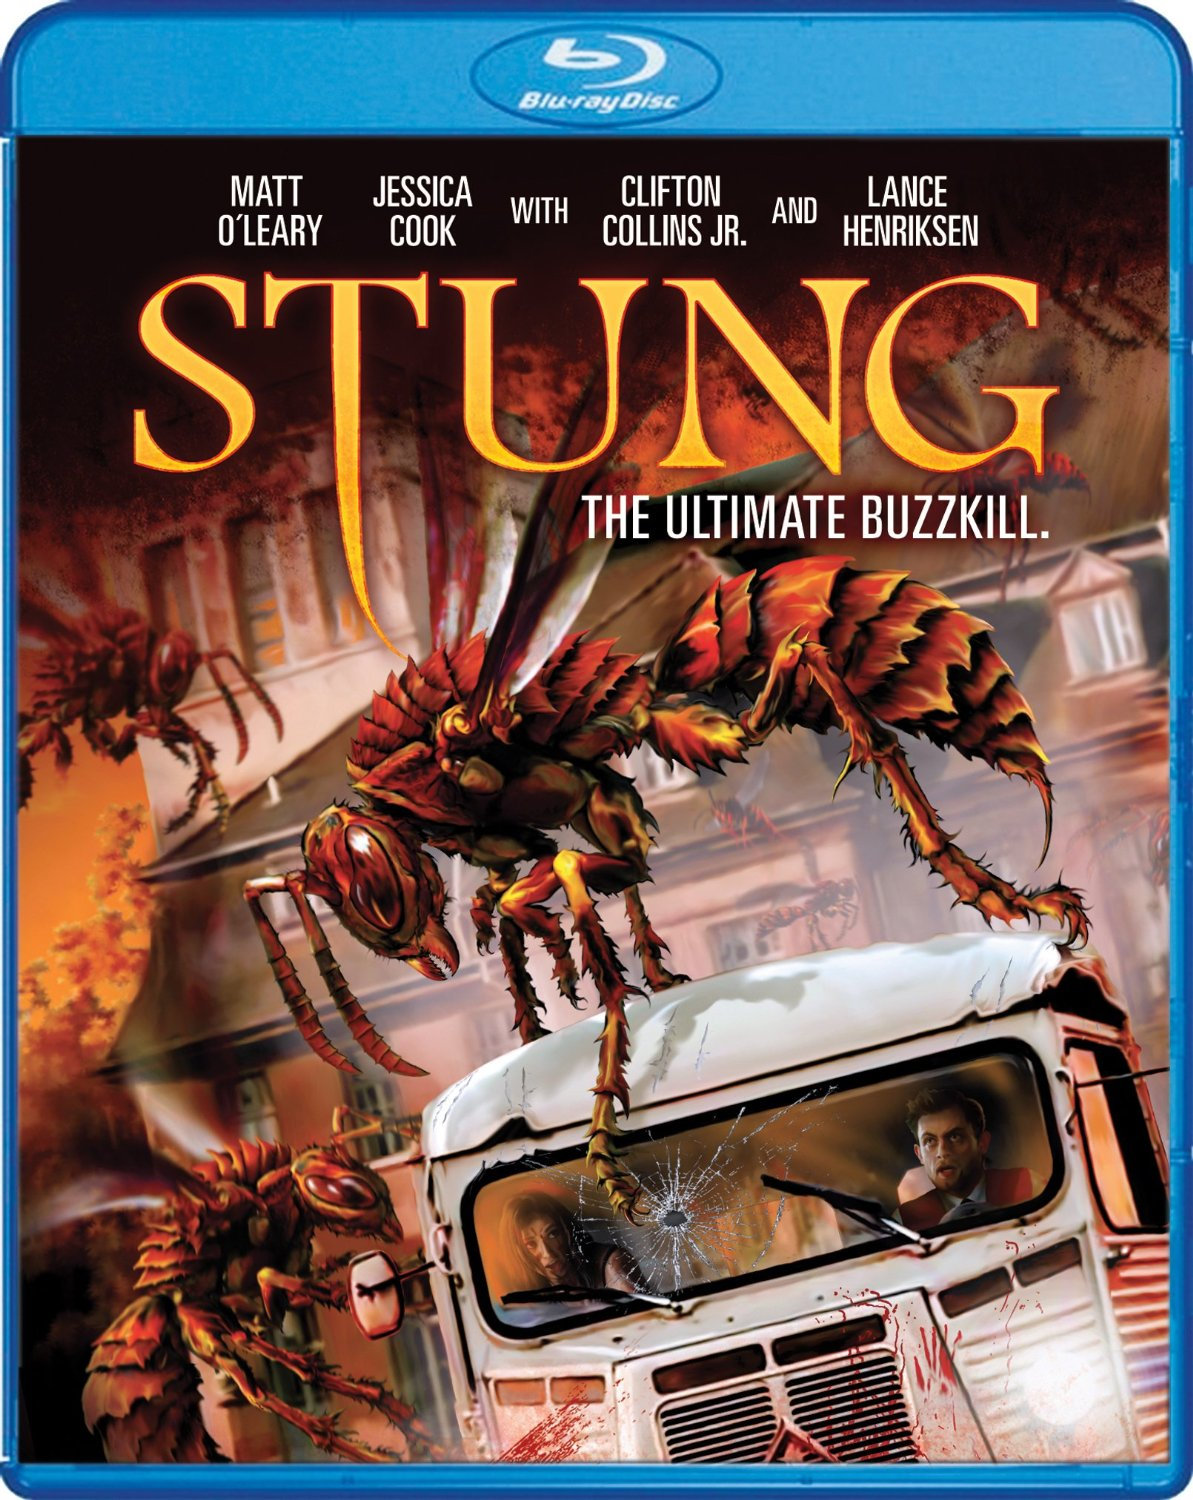 stung blu ray - Creature Feature Stung Flies Home This November